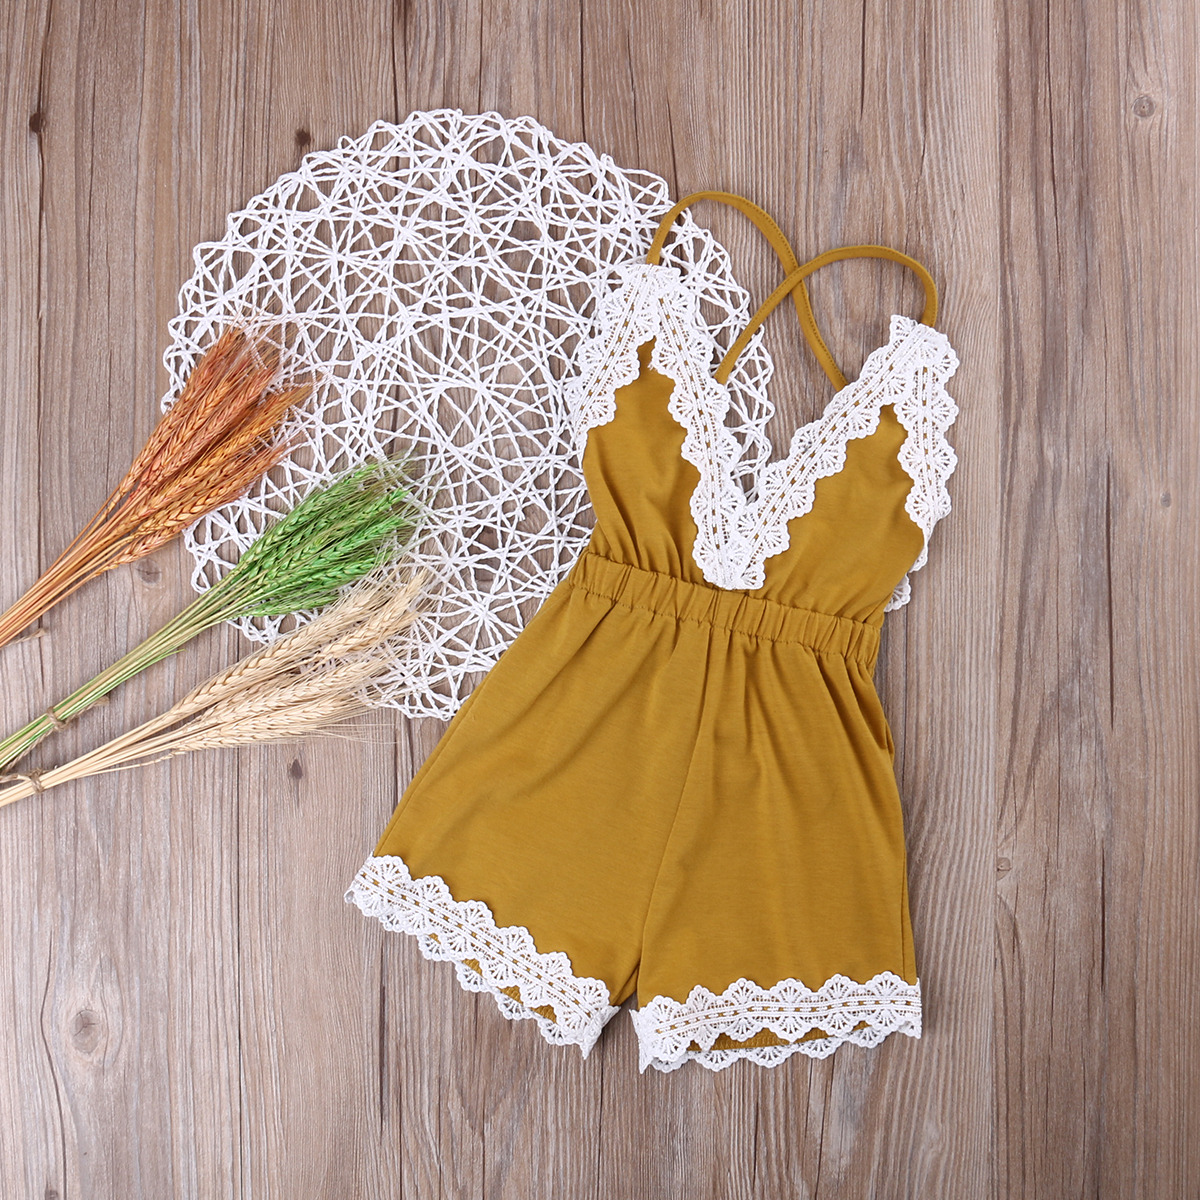 Pettigirl 2-12Y Girls Yellow Jumpsuit Romper Outfit Summer Kids Flower Lace Costume Children Overalls Clothes